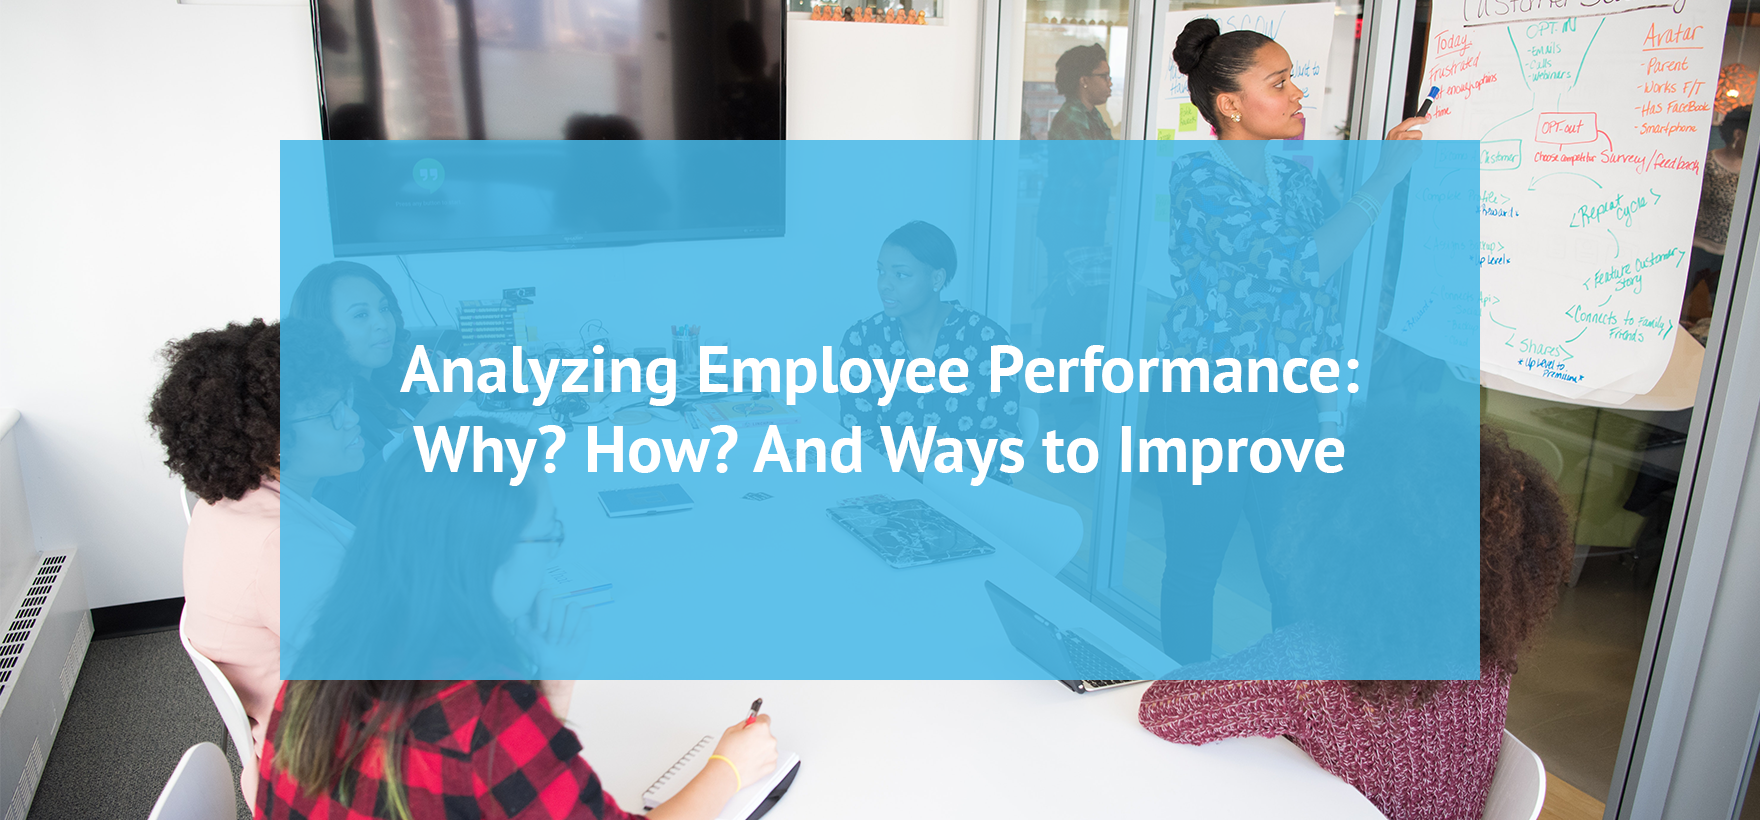 Analyzing Employee Performance